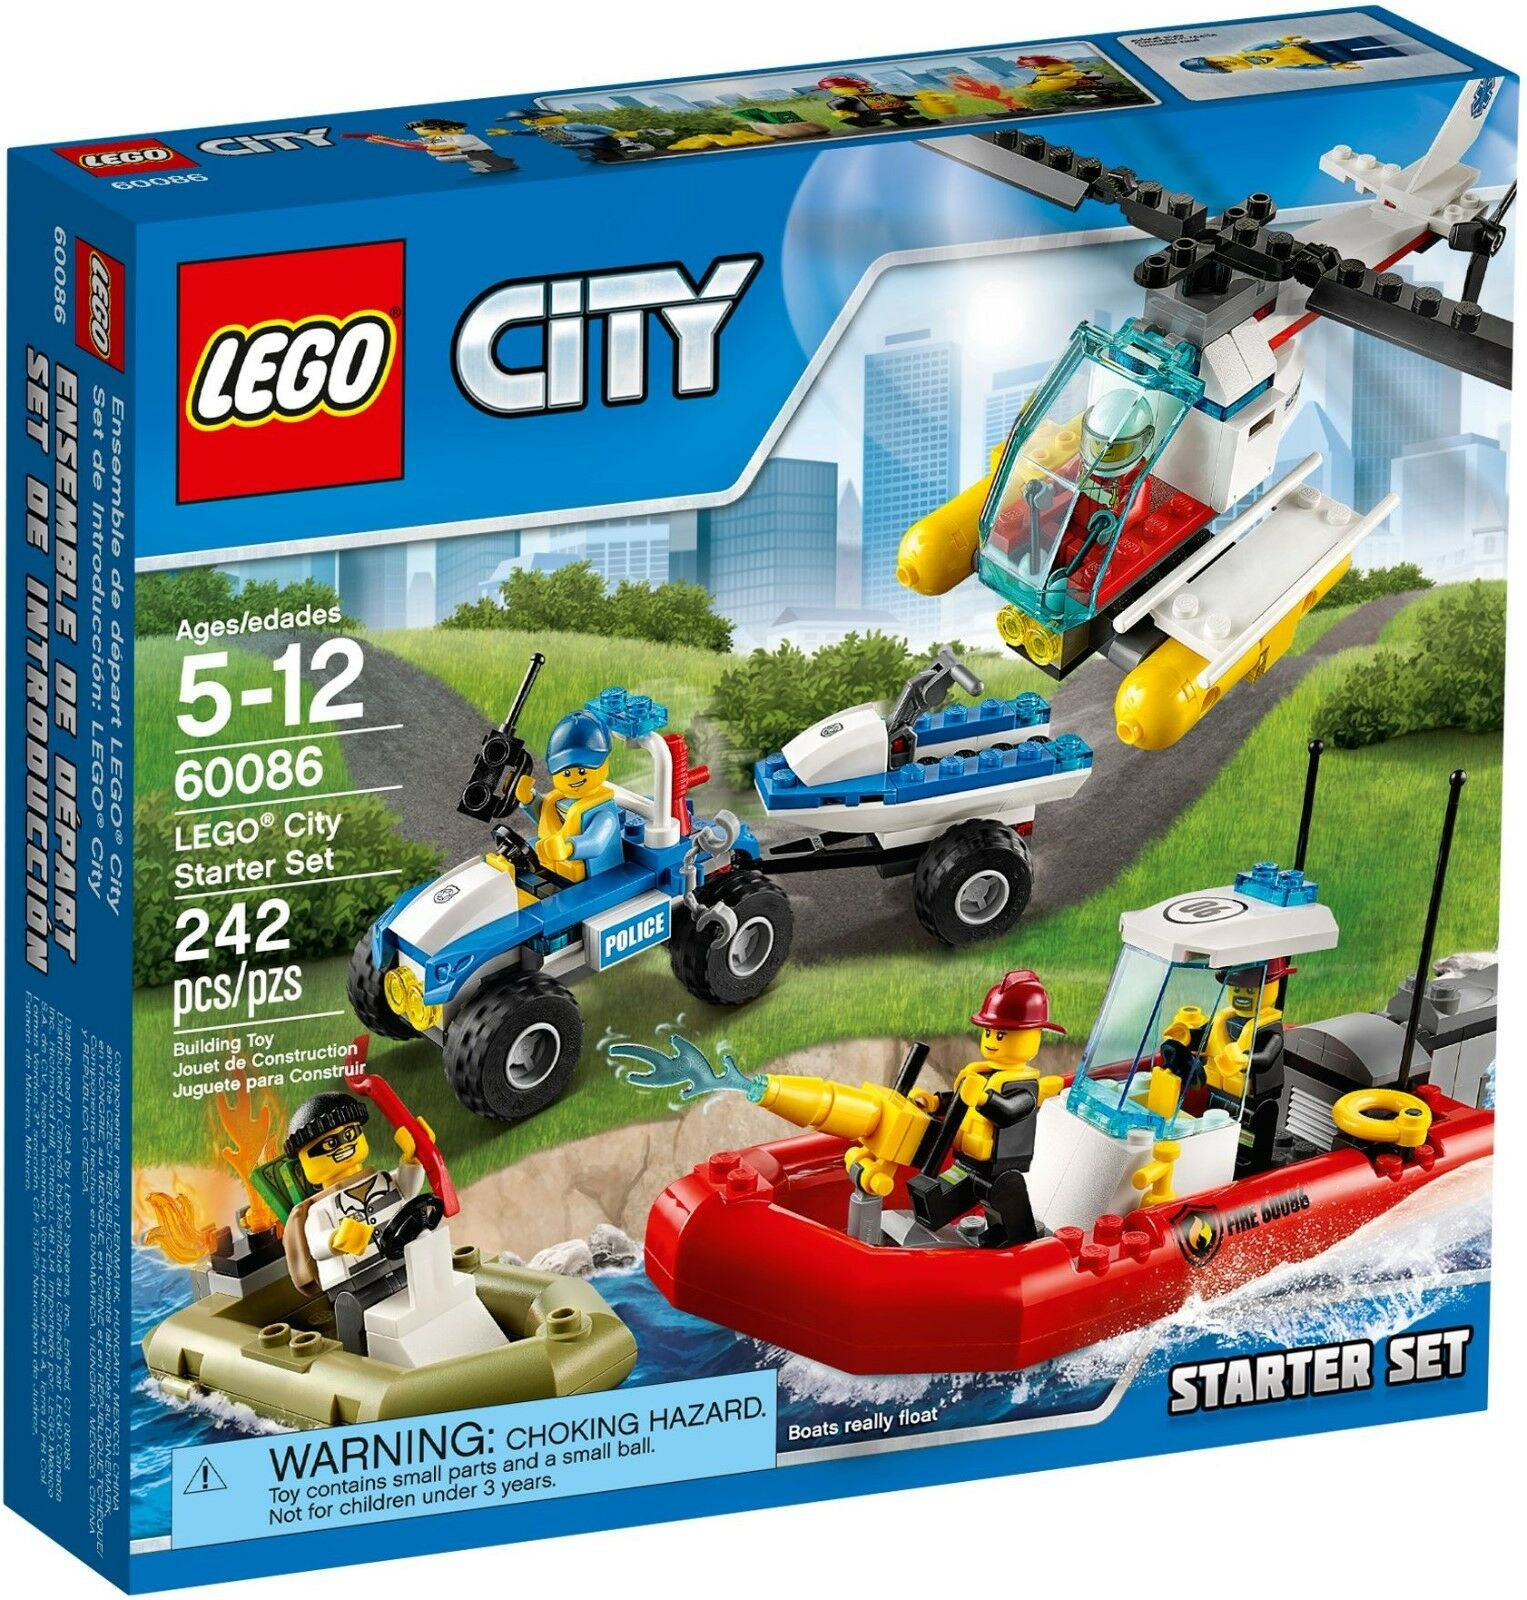 LEGO City Starter Set 60086 - Brand New